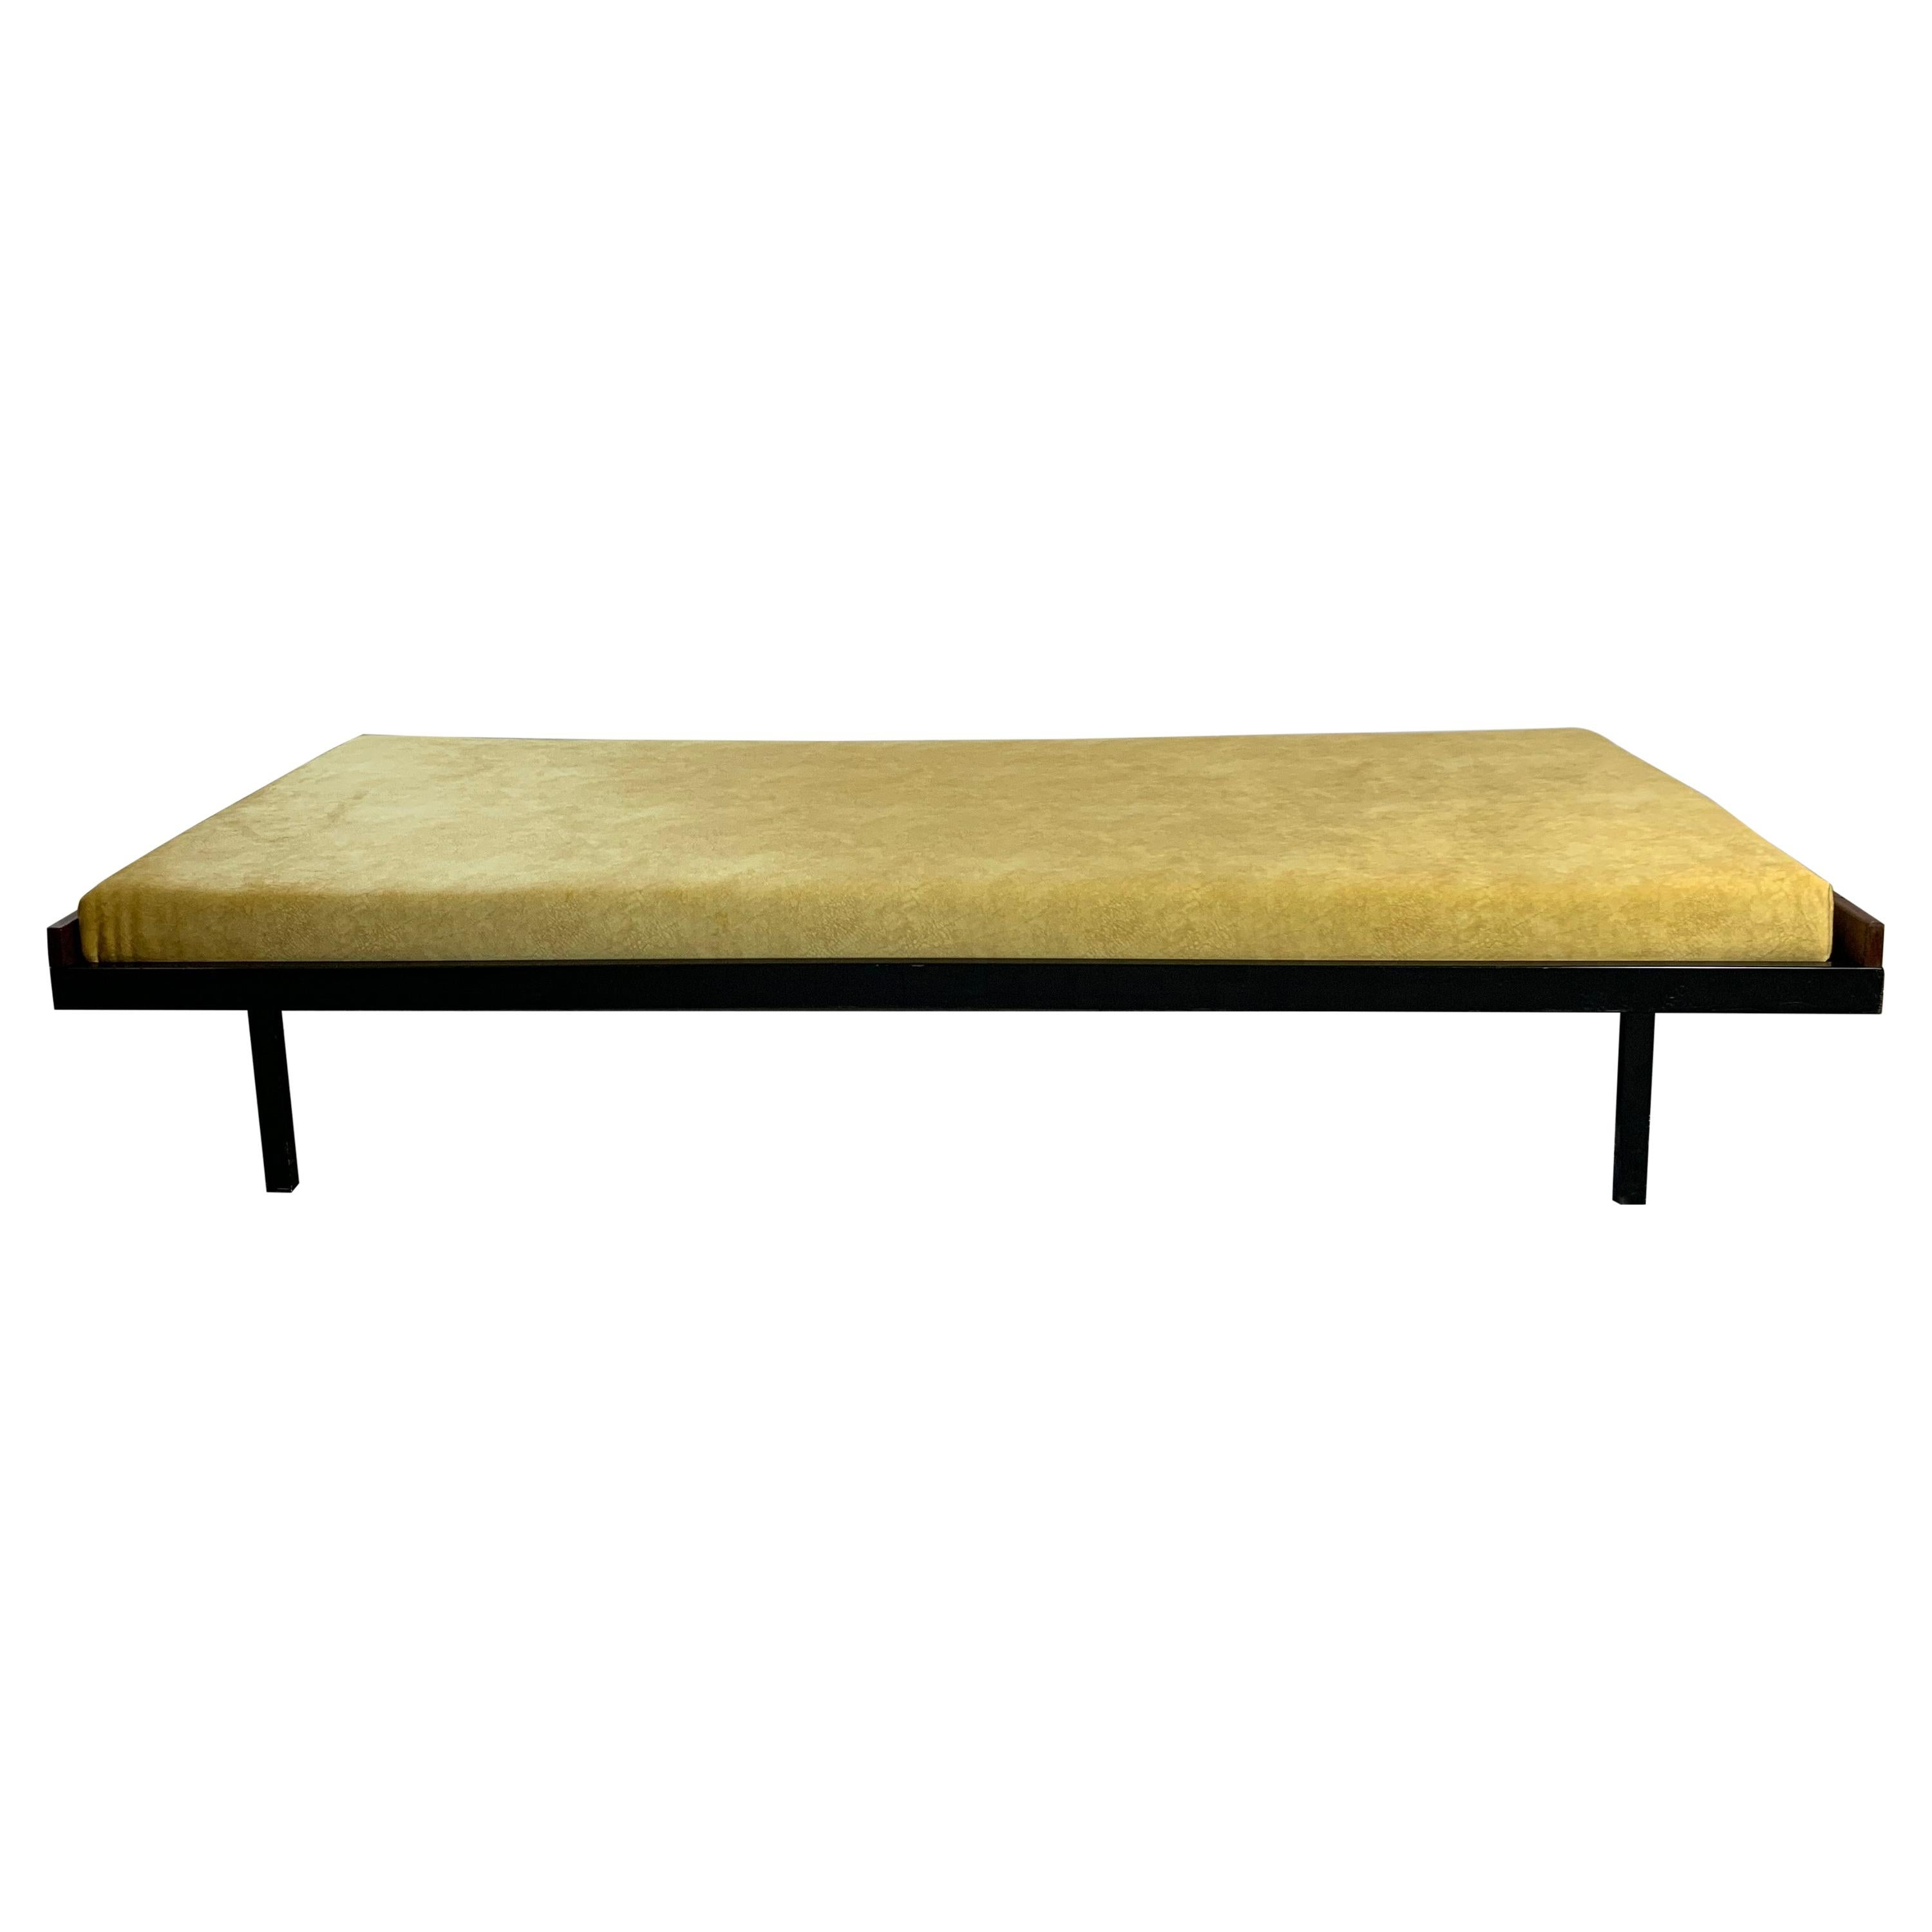 20th Century Industrial Couchette Daybed by Friso Kramer for Auping